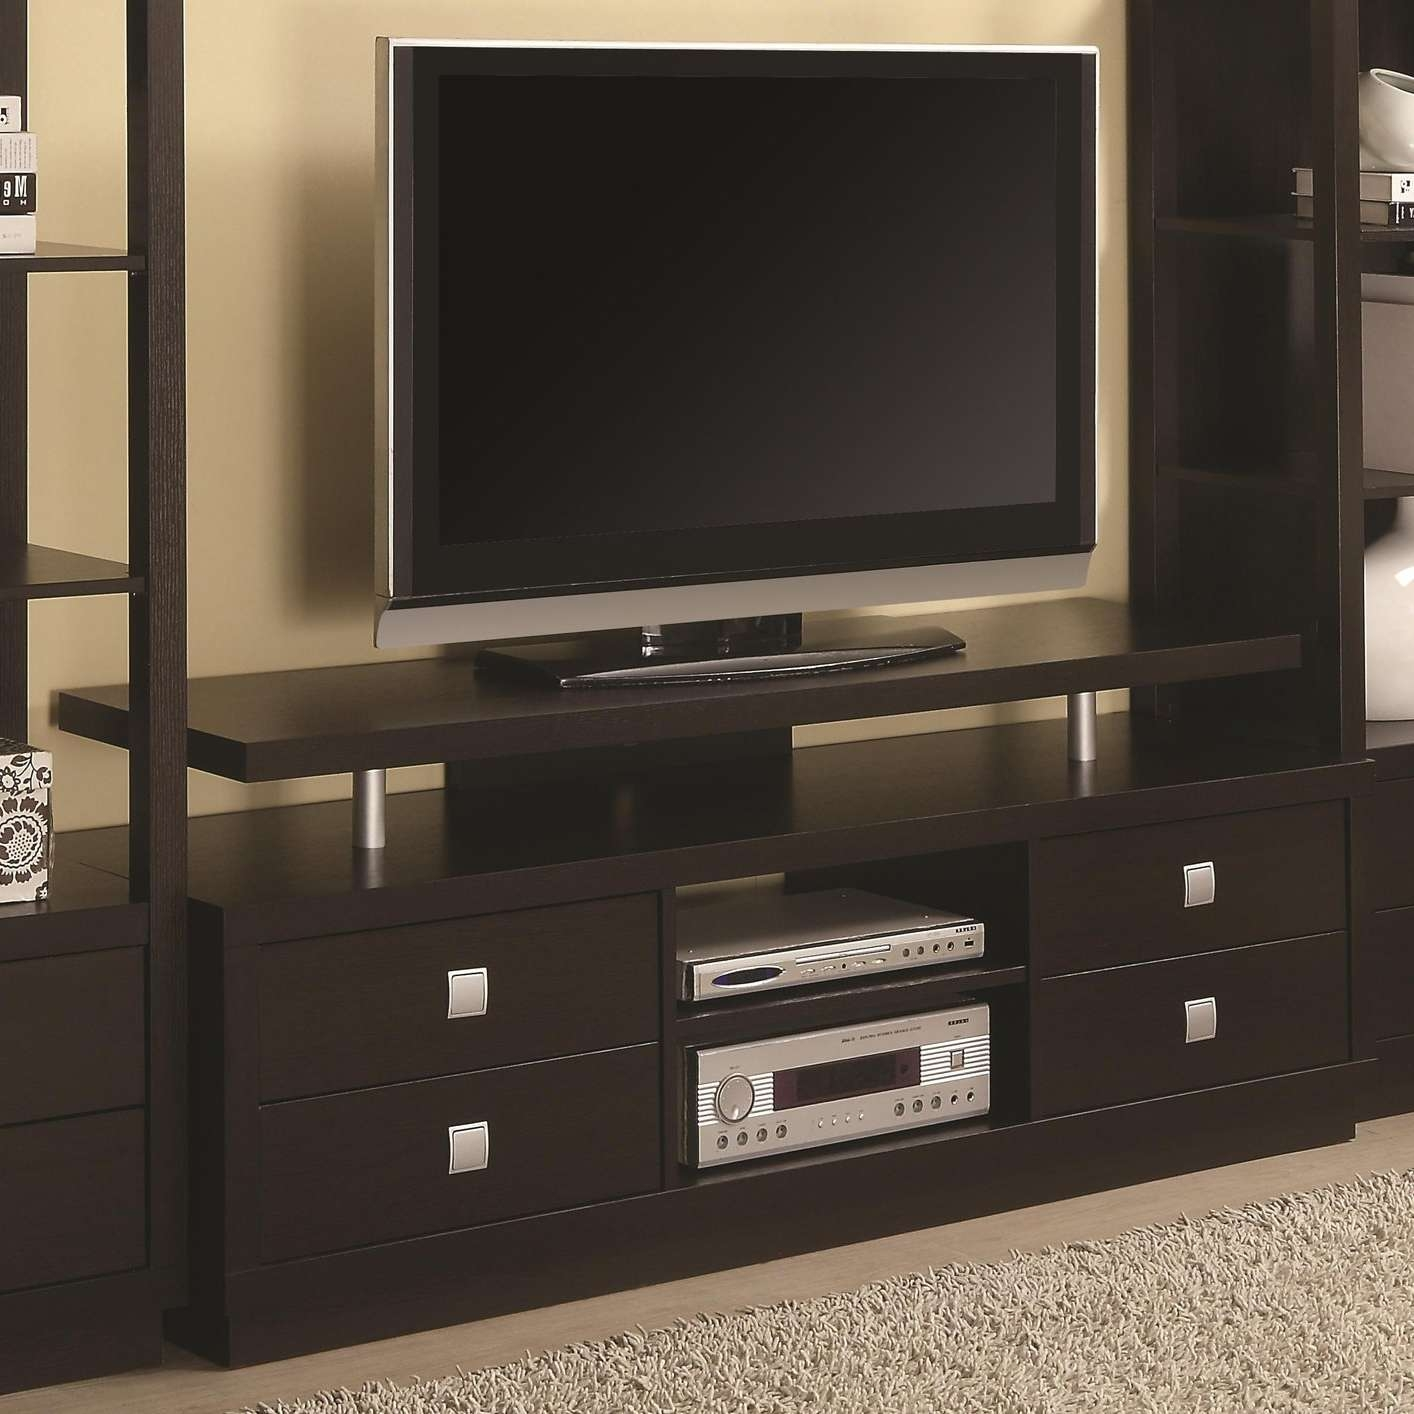 Brown Wood Tv Stand – Steal A Sofa Furniture Outlet Los Angeles Ca With Wood Tv Stands (View 5 of 15)